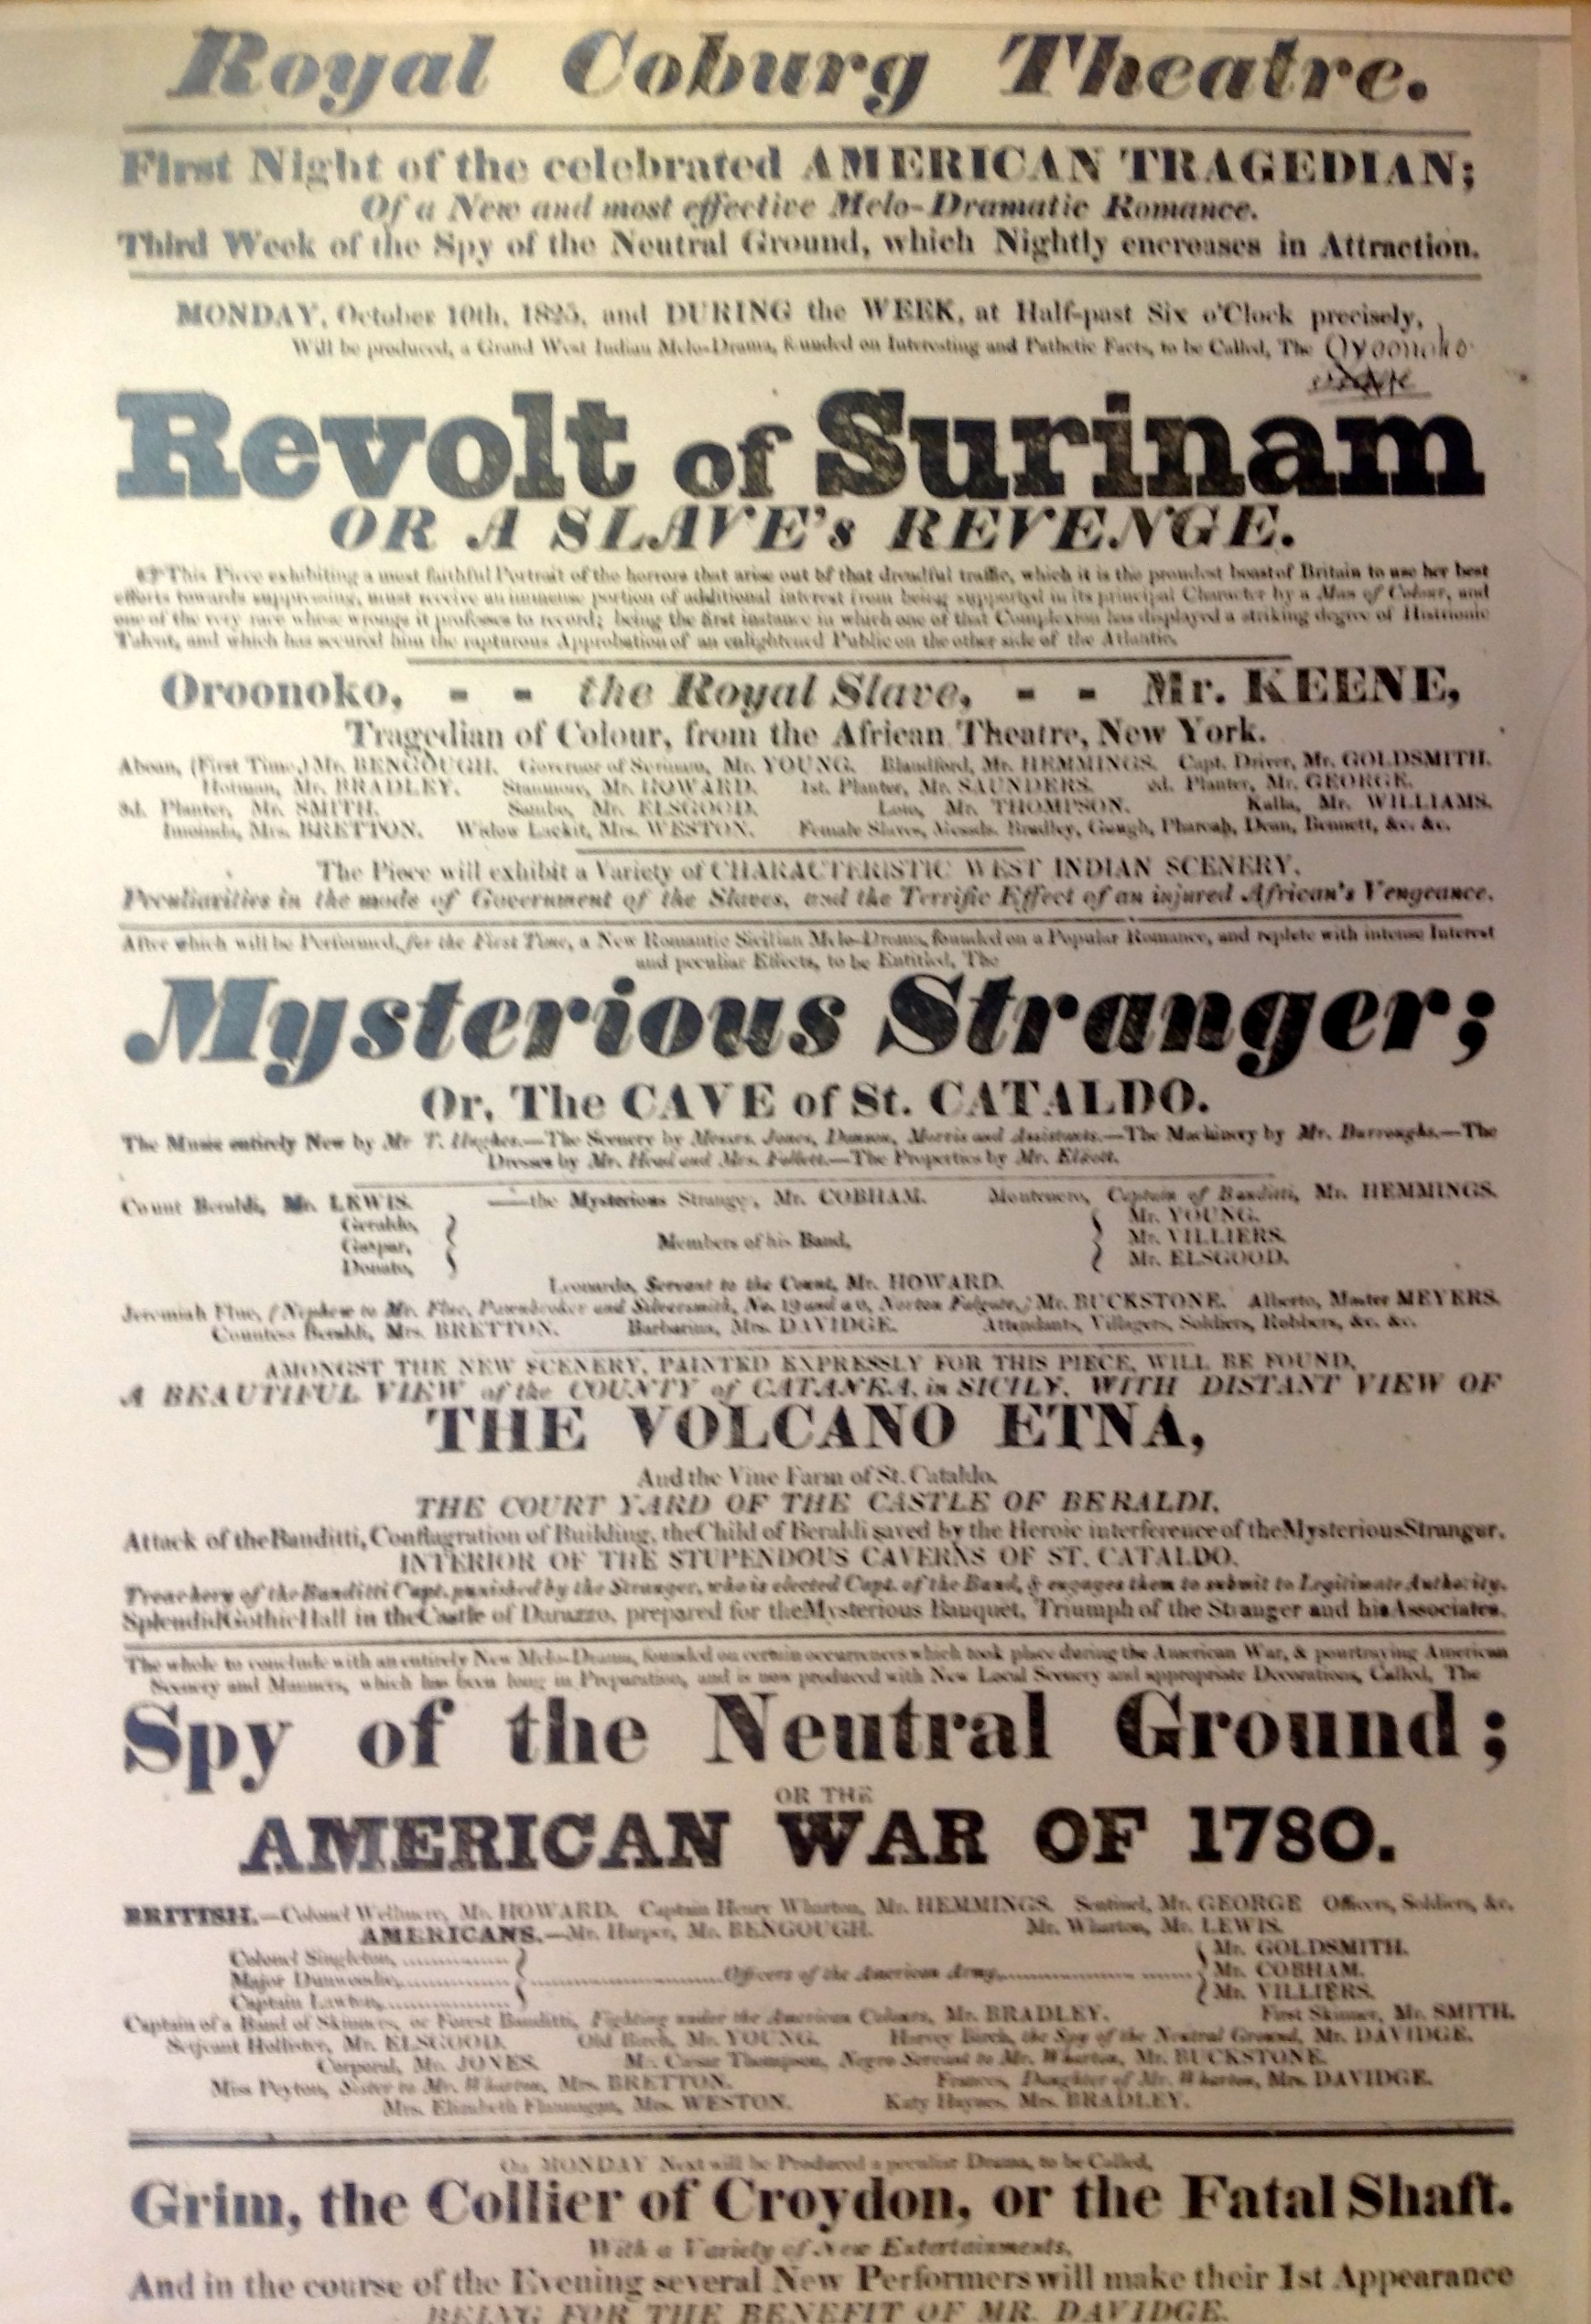 <b>Revolt of Surinam, Aldridge Playbill</b>     	</br>A playbill for Ira Aldridge&#39;s performance as Oroonoko in &#39;The Revolt of Surinam; or, A Slave&#39;s Revenge&#39; at the Royal Coburg Theatre in London, October 10, 1825.</br><br/><b>Source: </b><i>Used with permission from the University of Bristol Theatre Collection.</i>